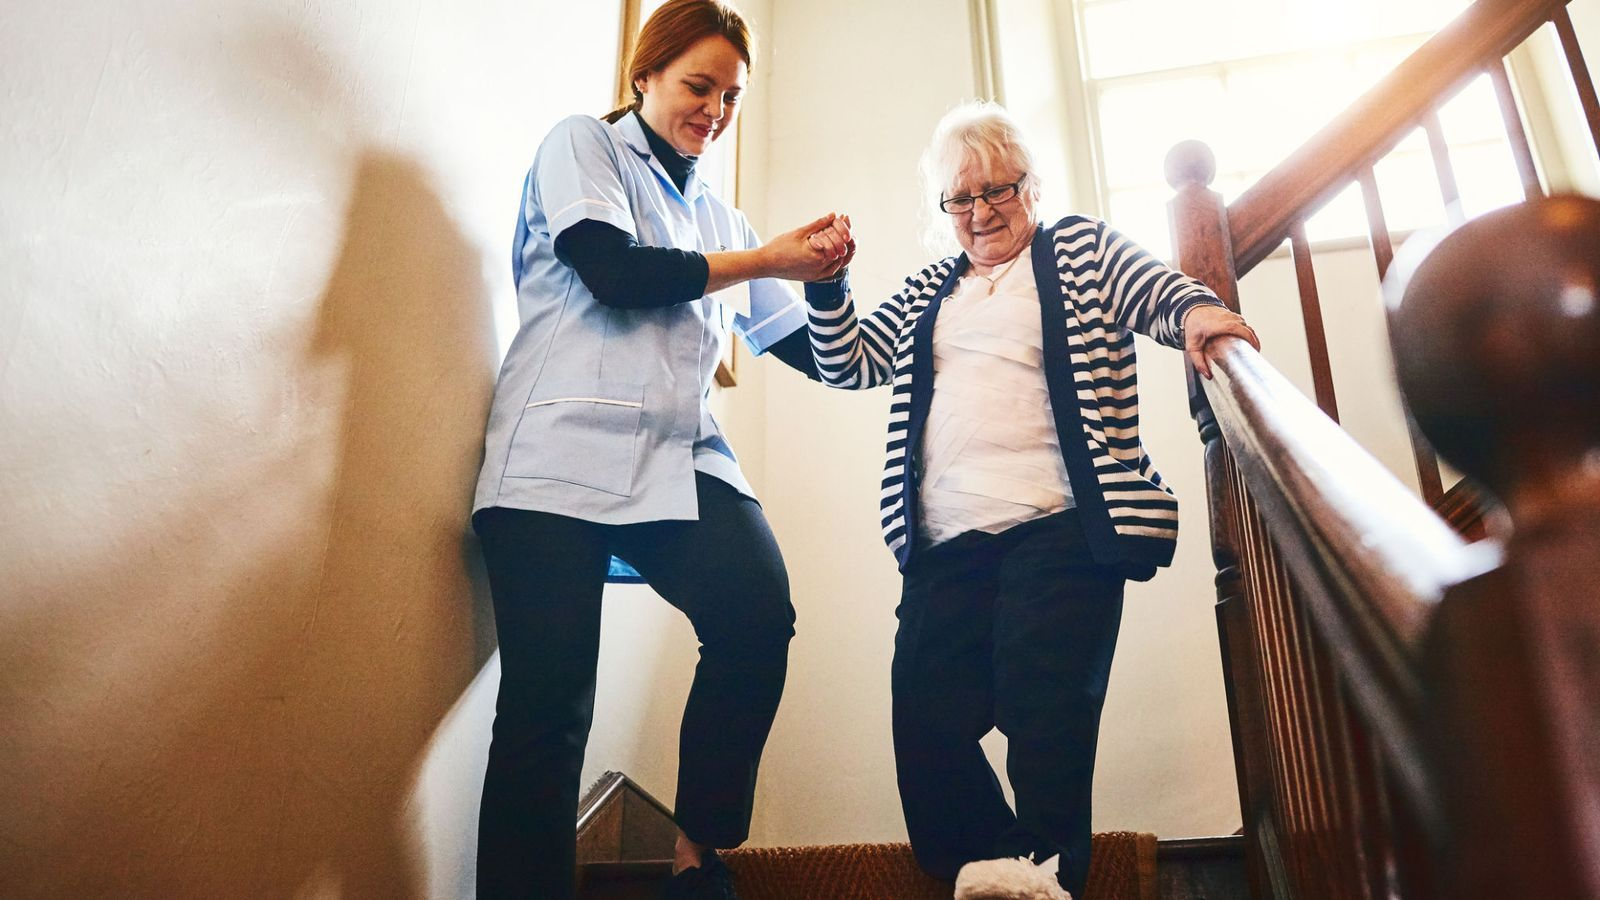 All elderly people to get free personal care under £6bn